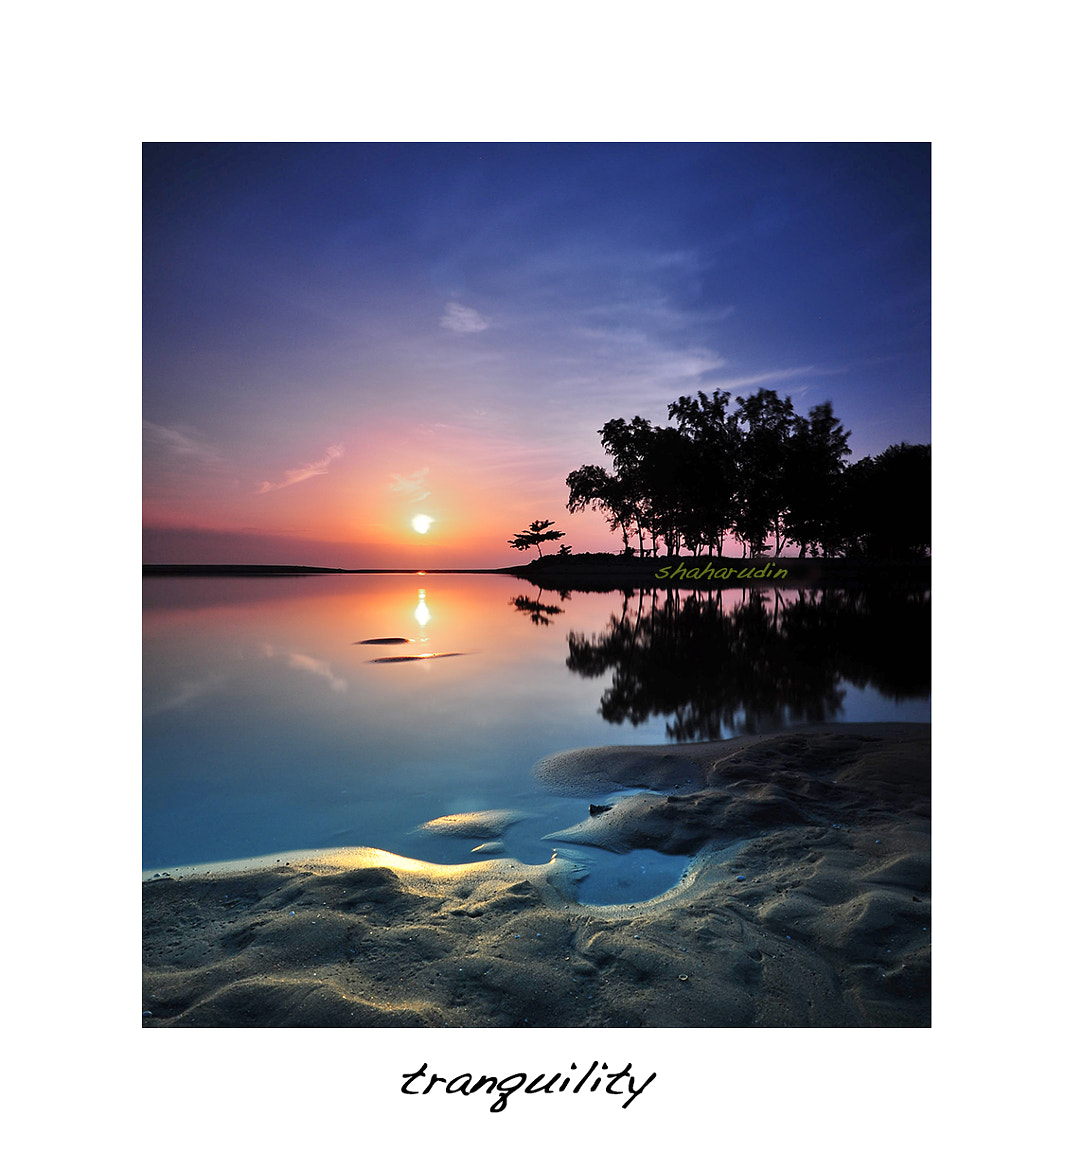 Photograph Tranquility by Shaharudin Abdullah on 500px